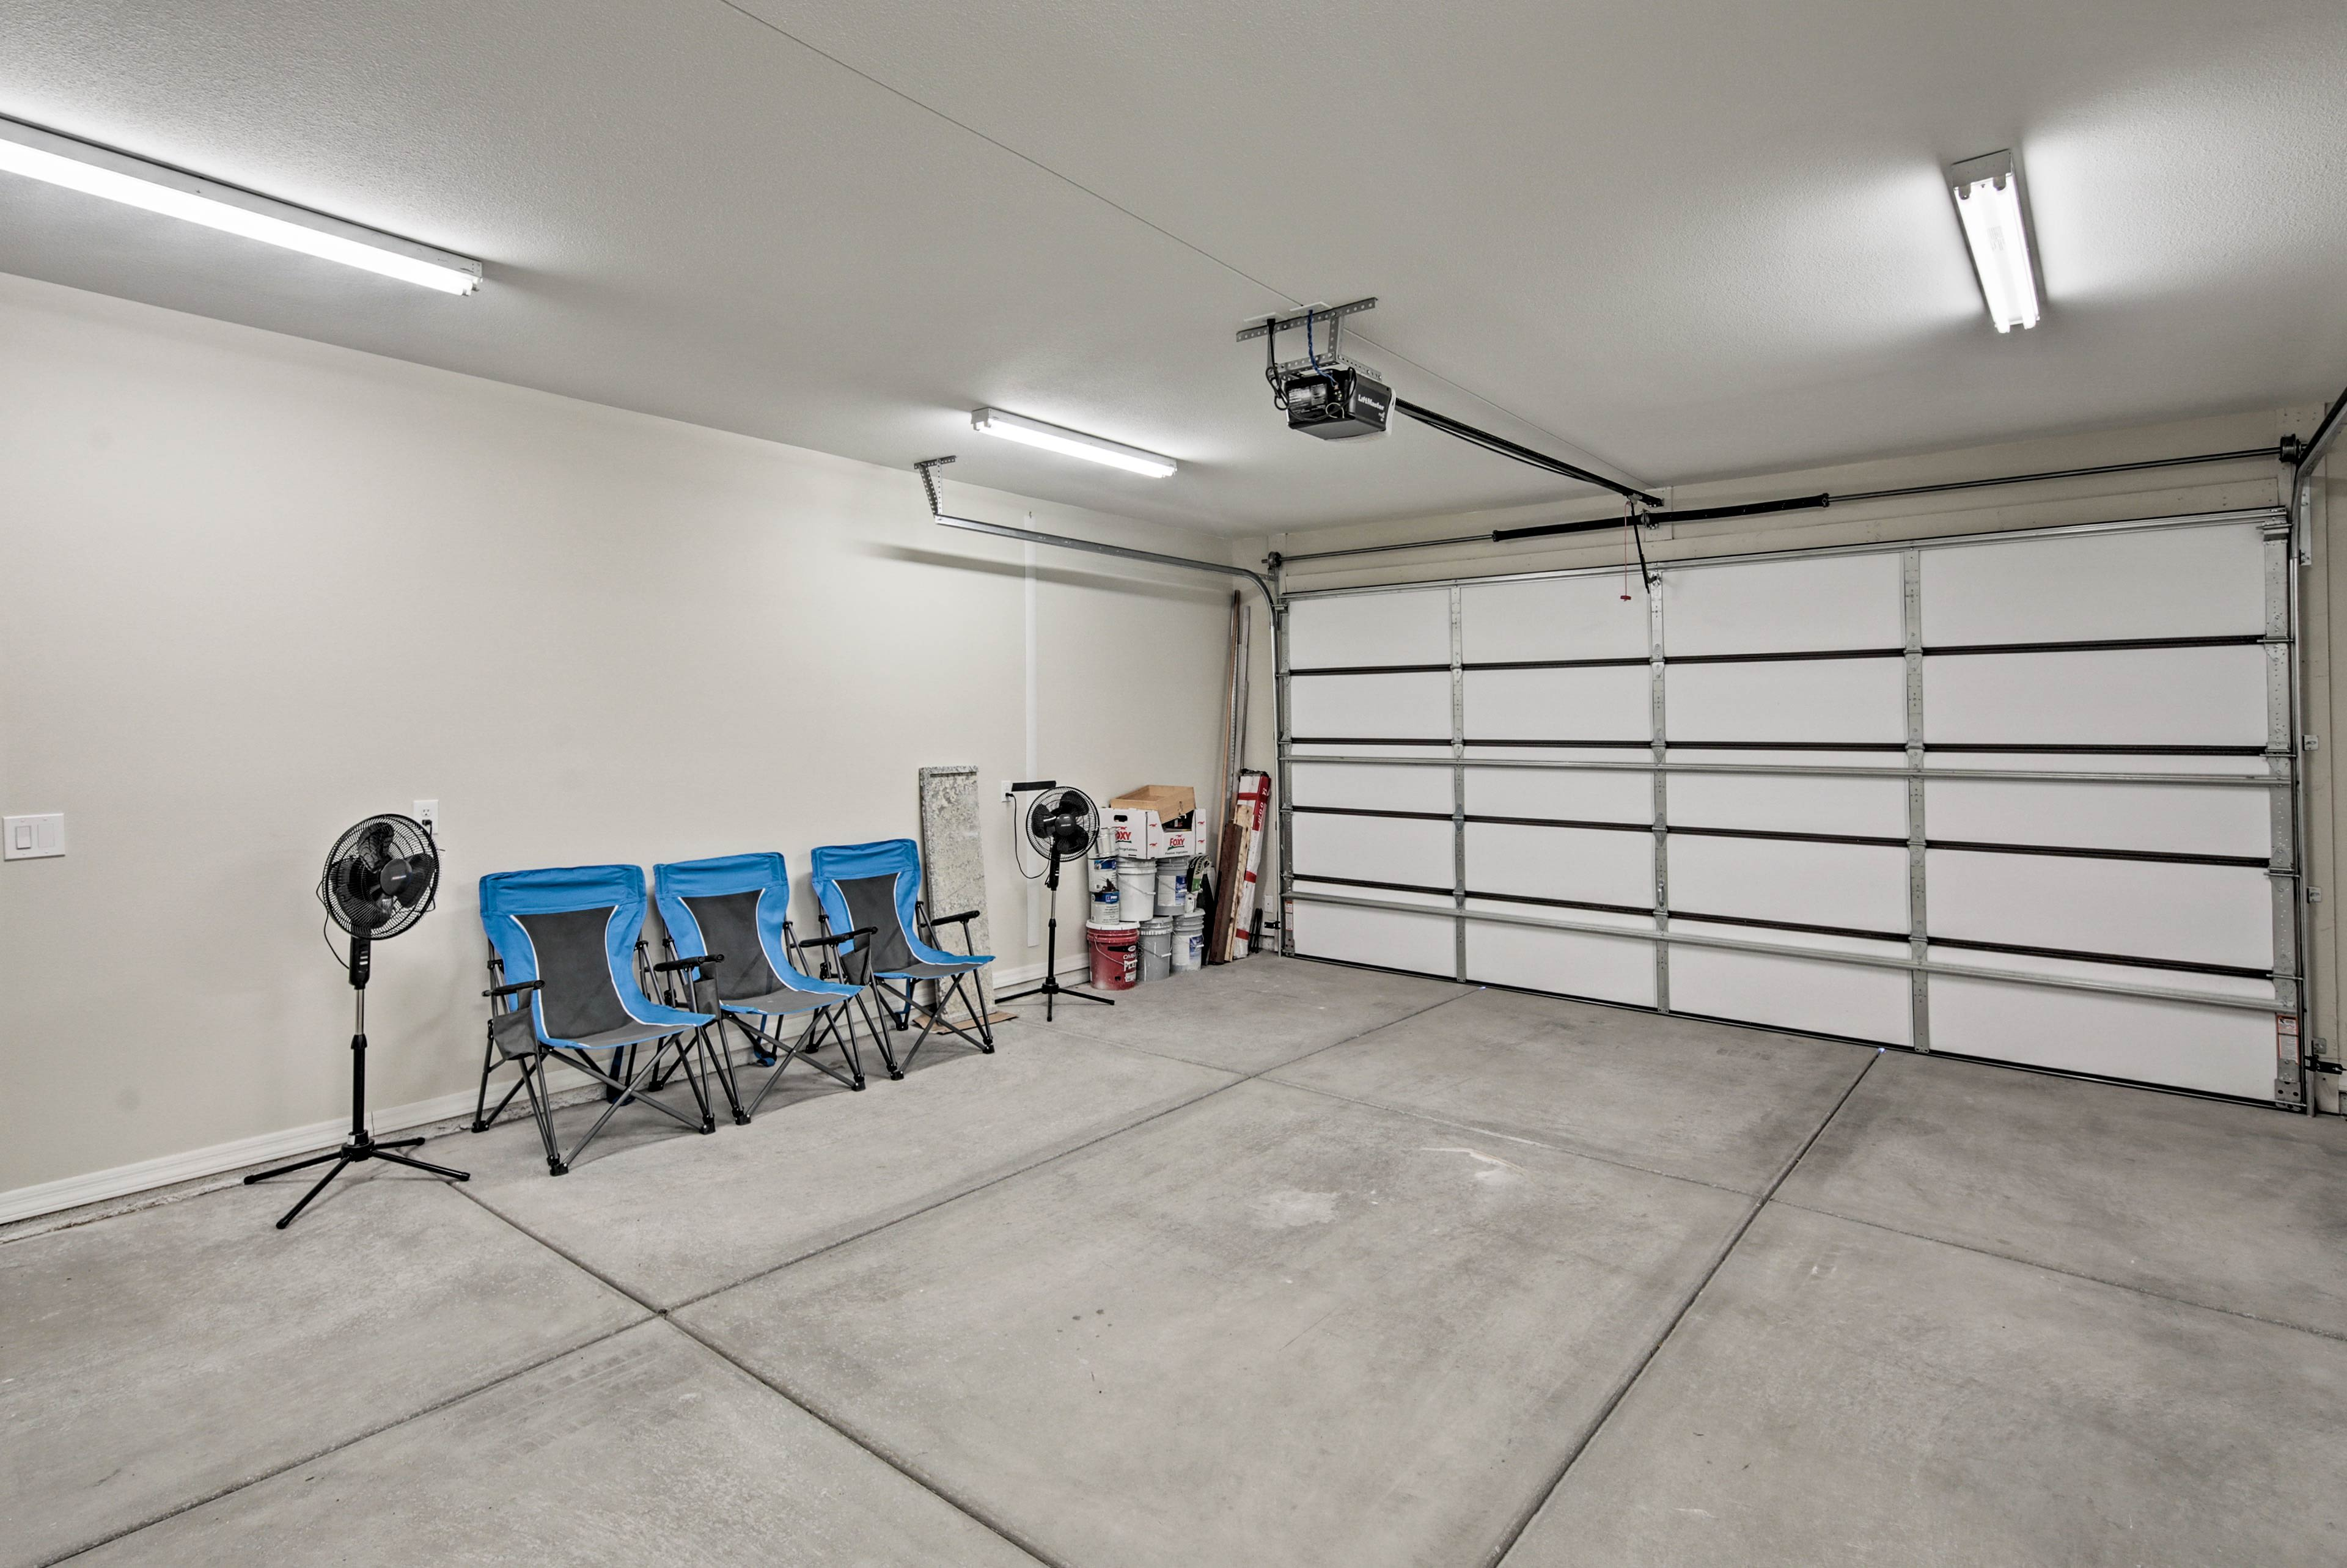 Up to 2 vehicles can park in the garage